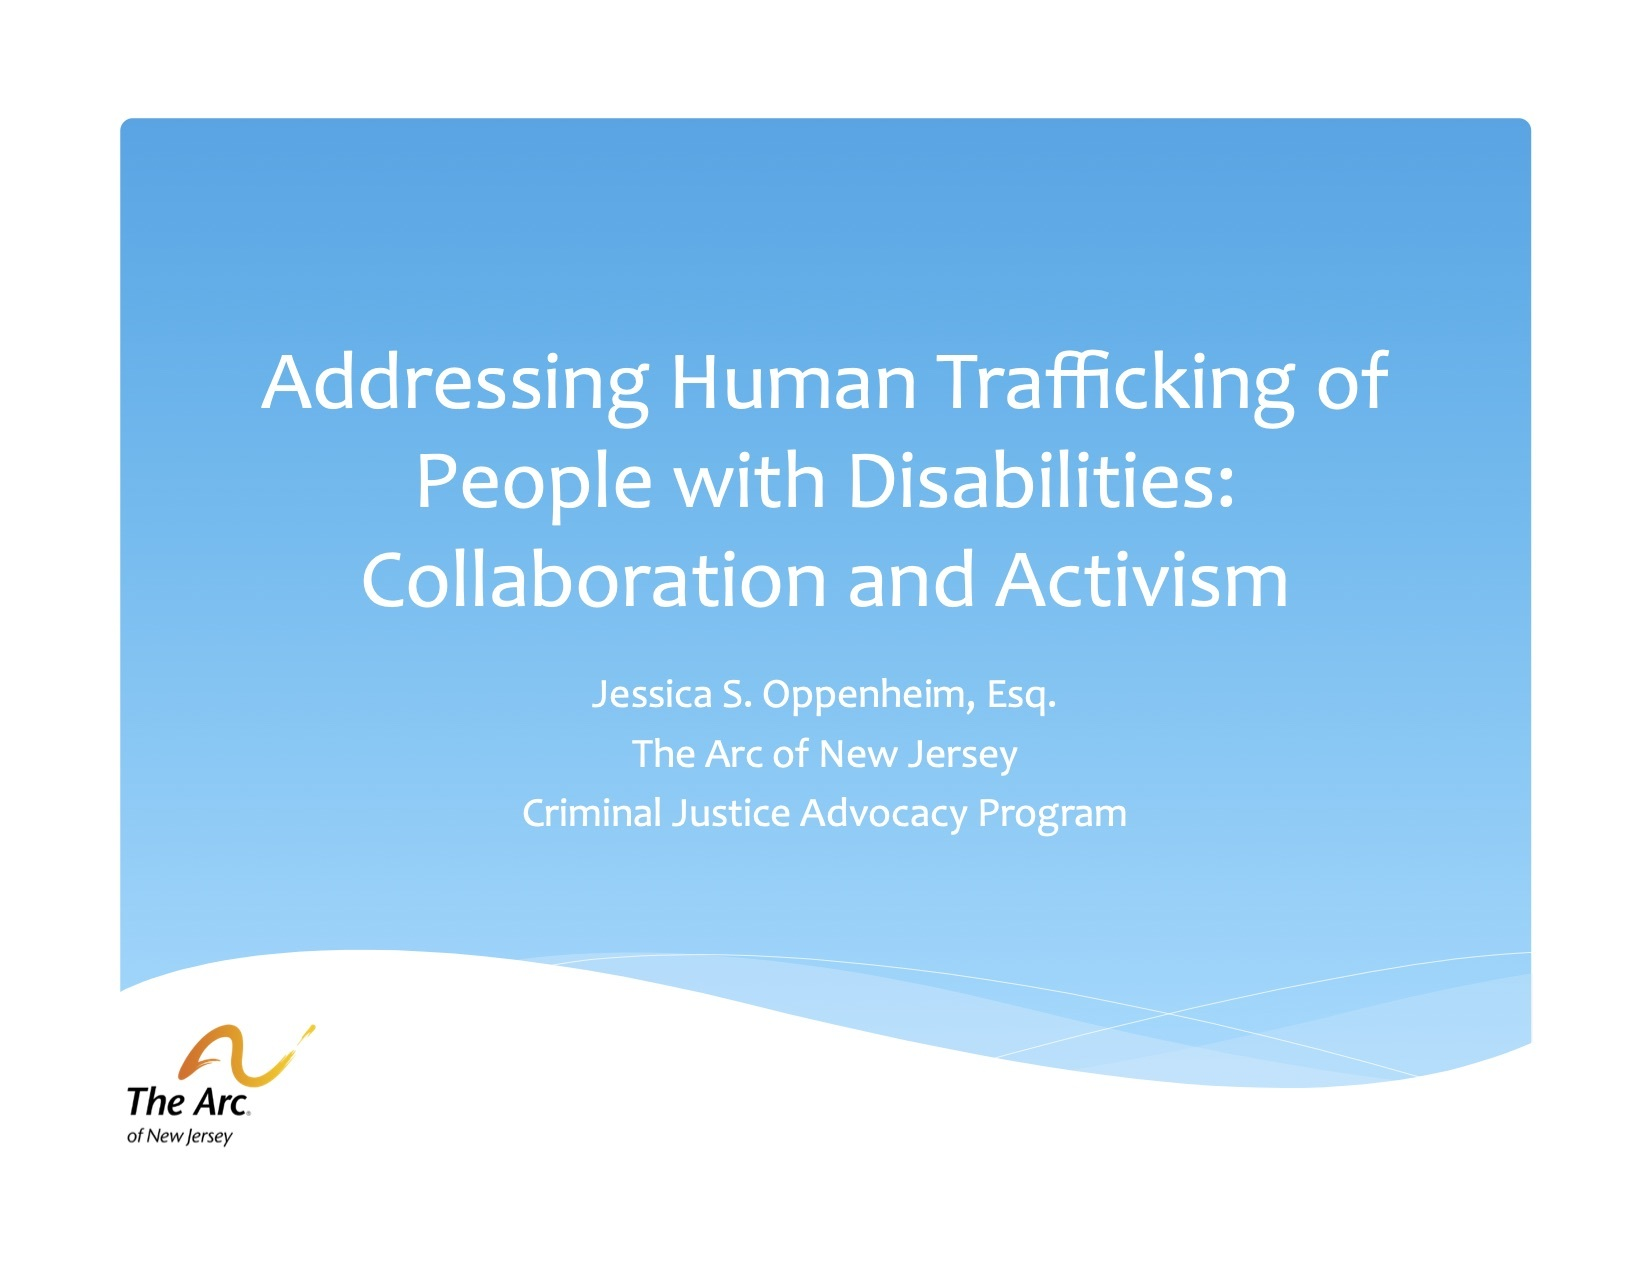 Human trafficking and disabilities report